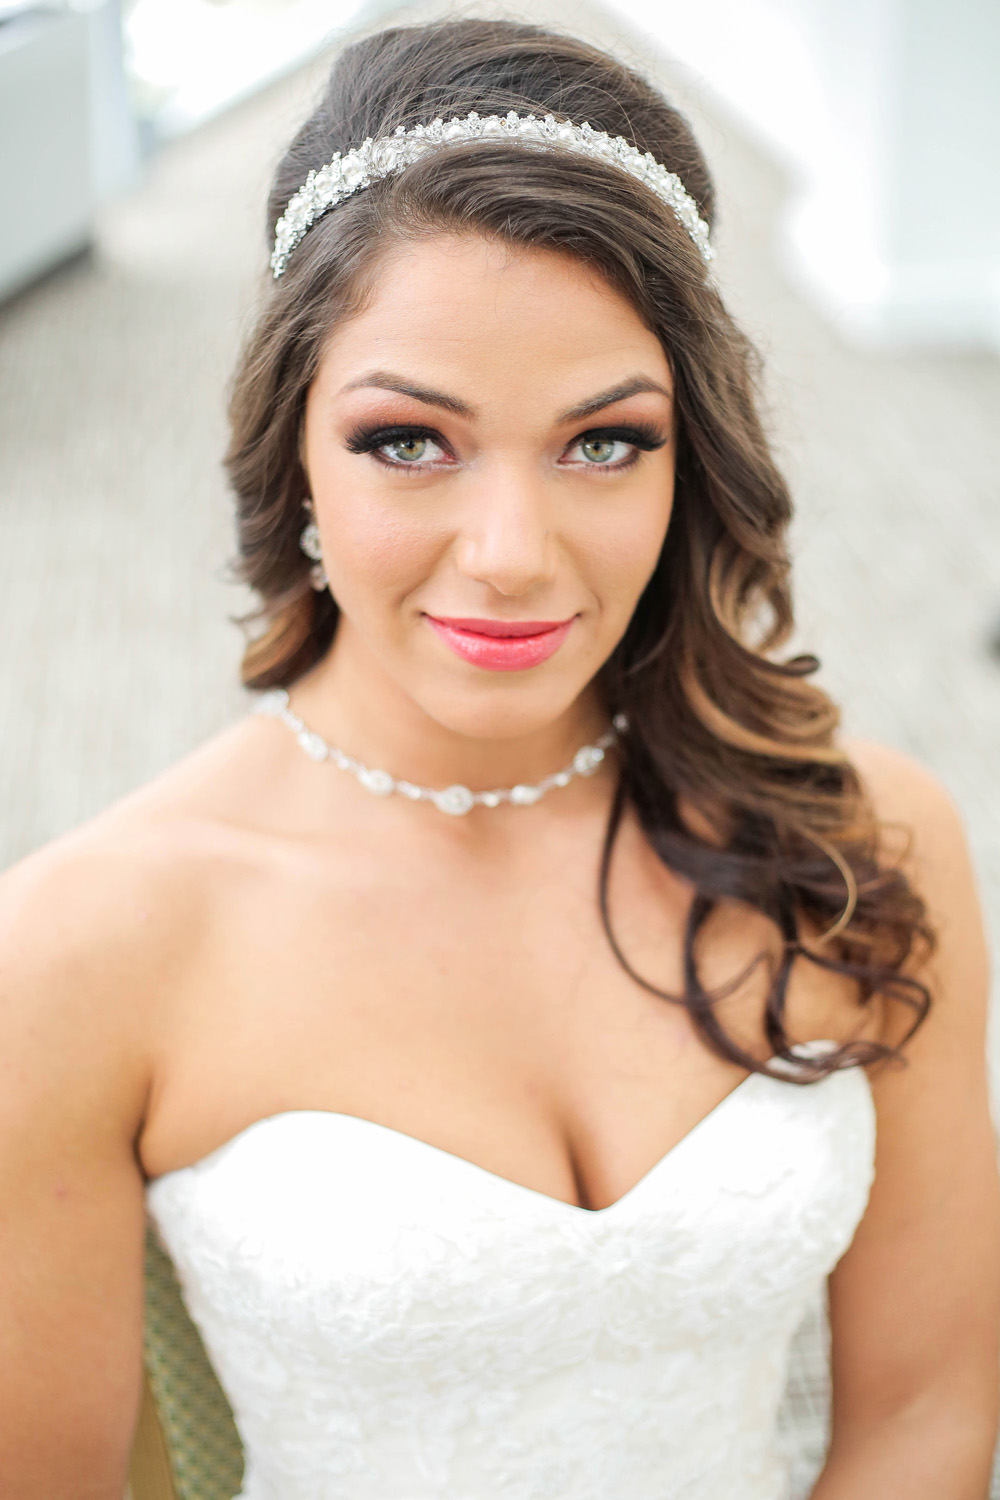 Wedding Day Makeup Essentials : 6 Wedding Day Beauty Essentials The Wedding Mag